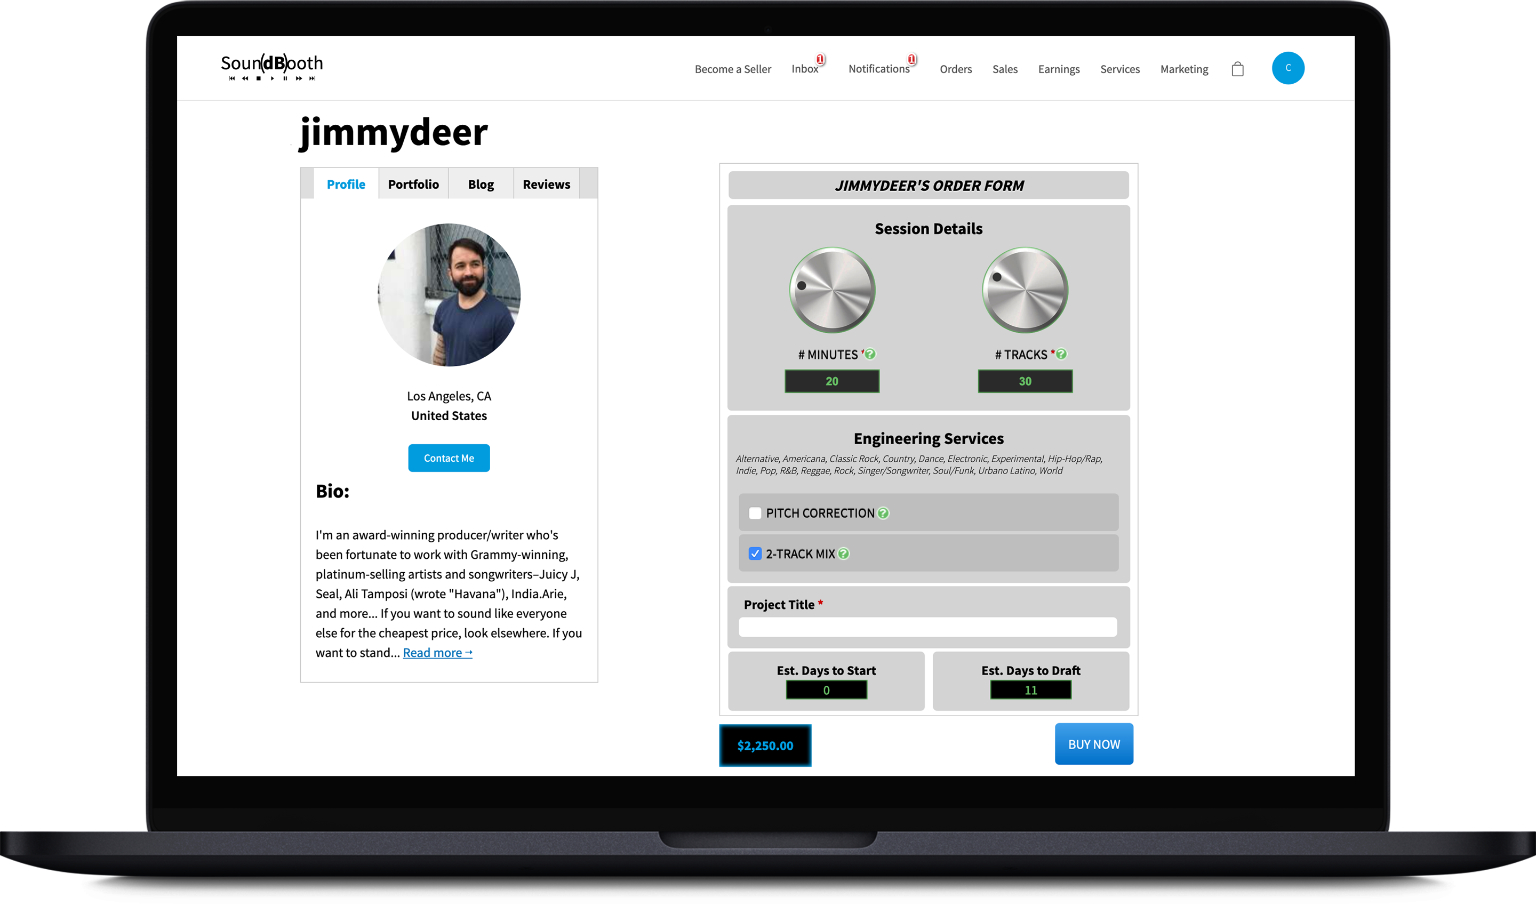 SoundBooth Seller Page